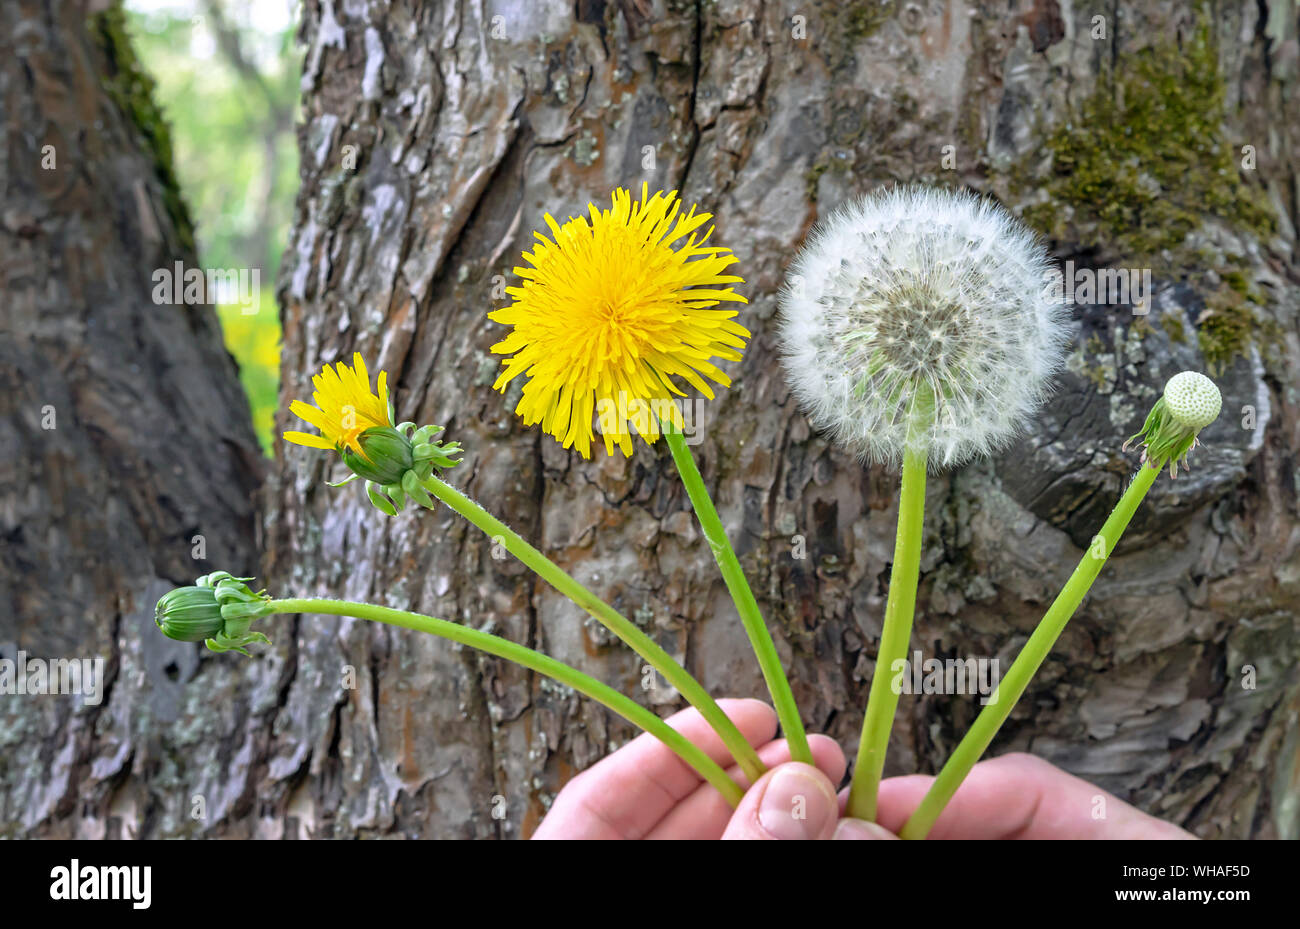 Dandelion flower. The life cycle of a dandelion. Stages of ...